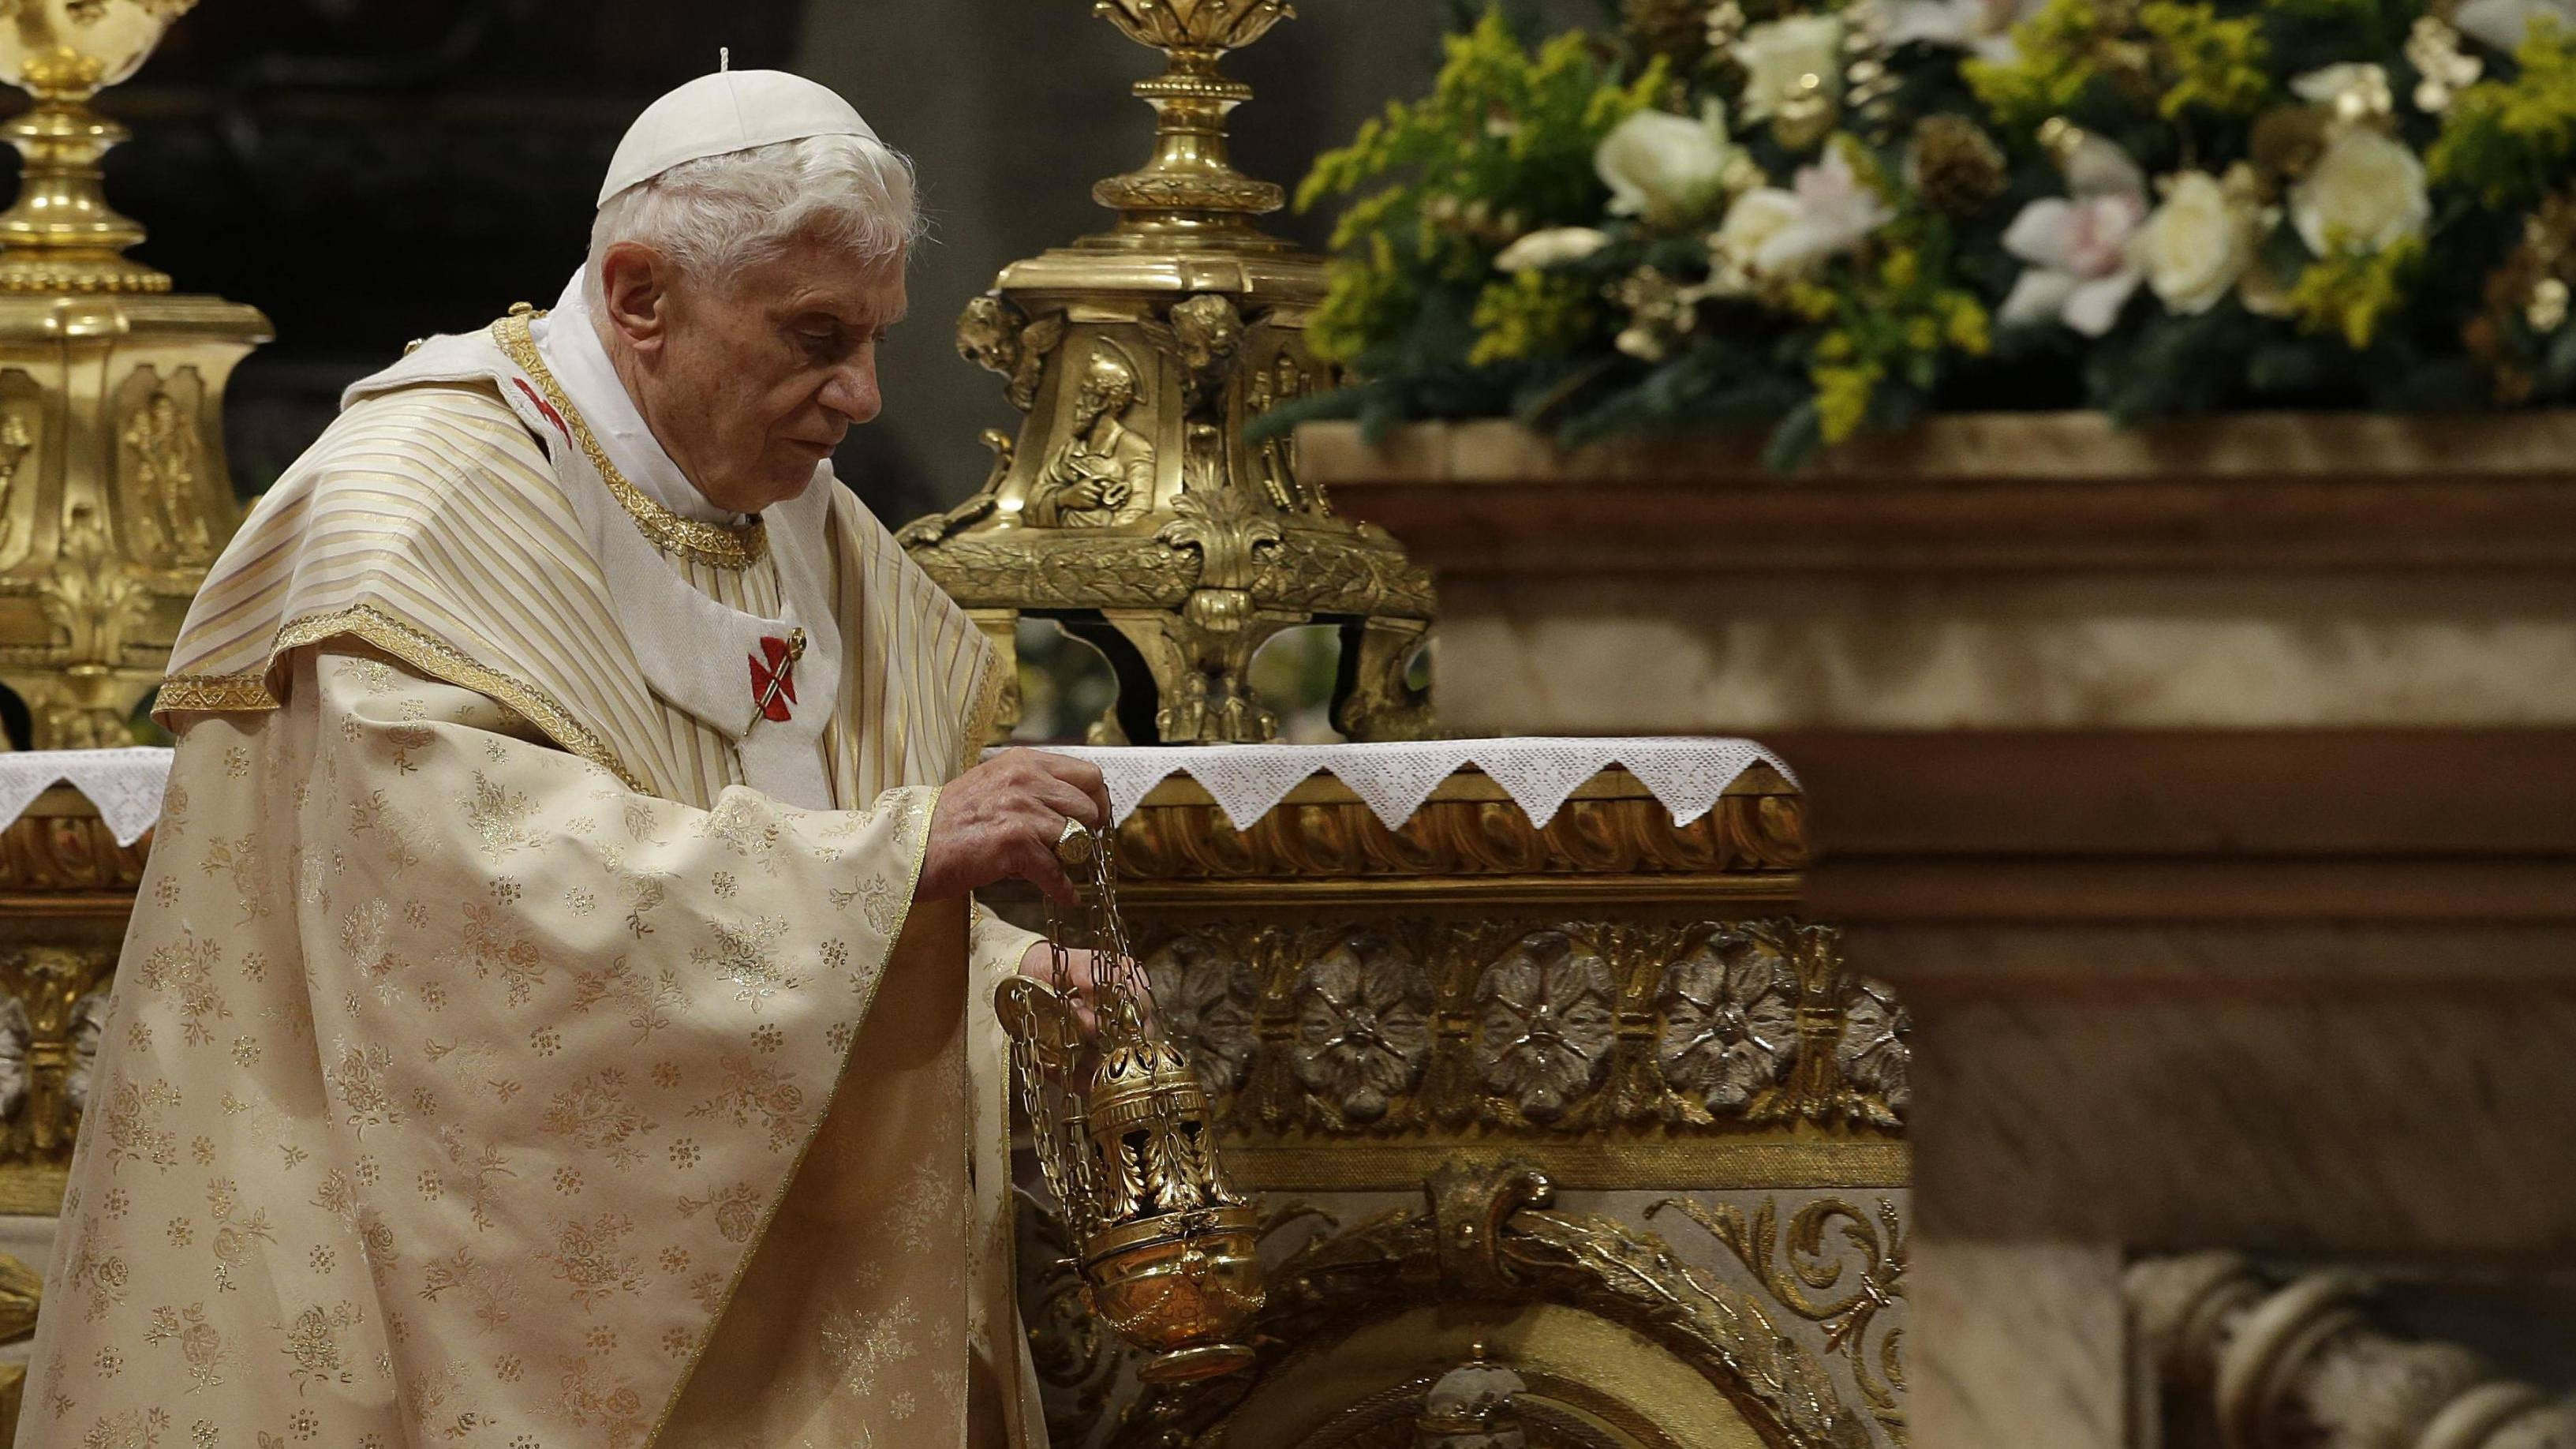 Pope Benedict XVI to resign in late February